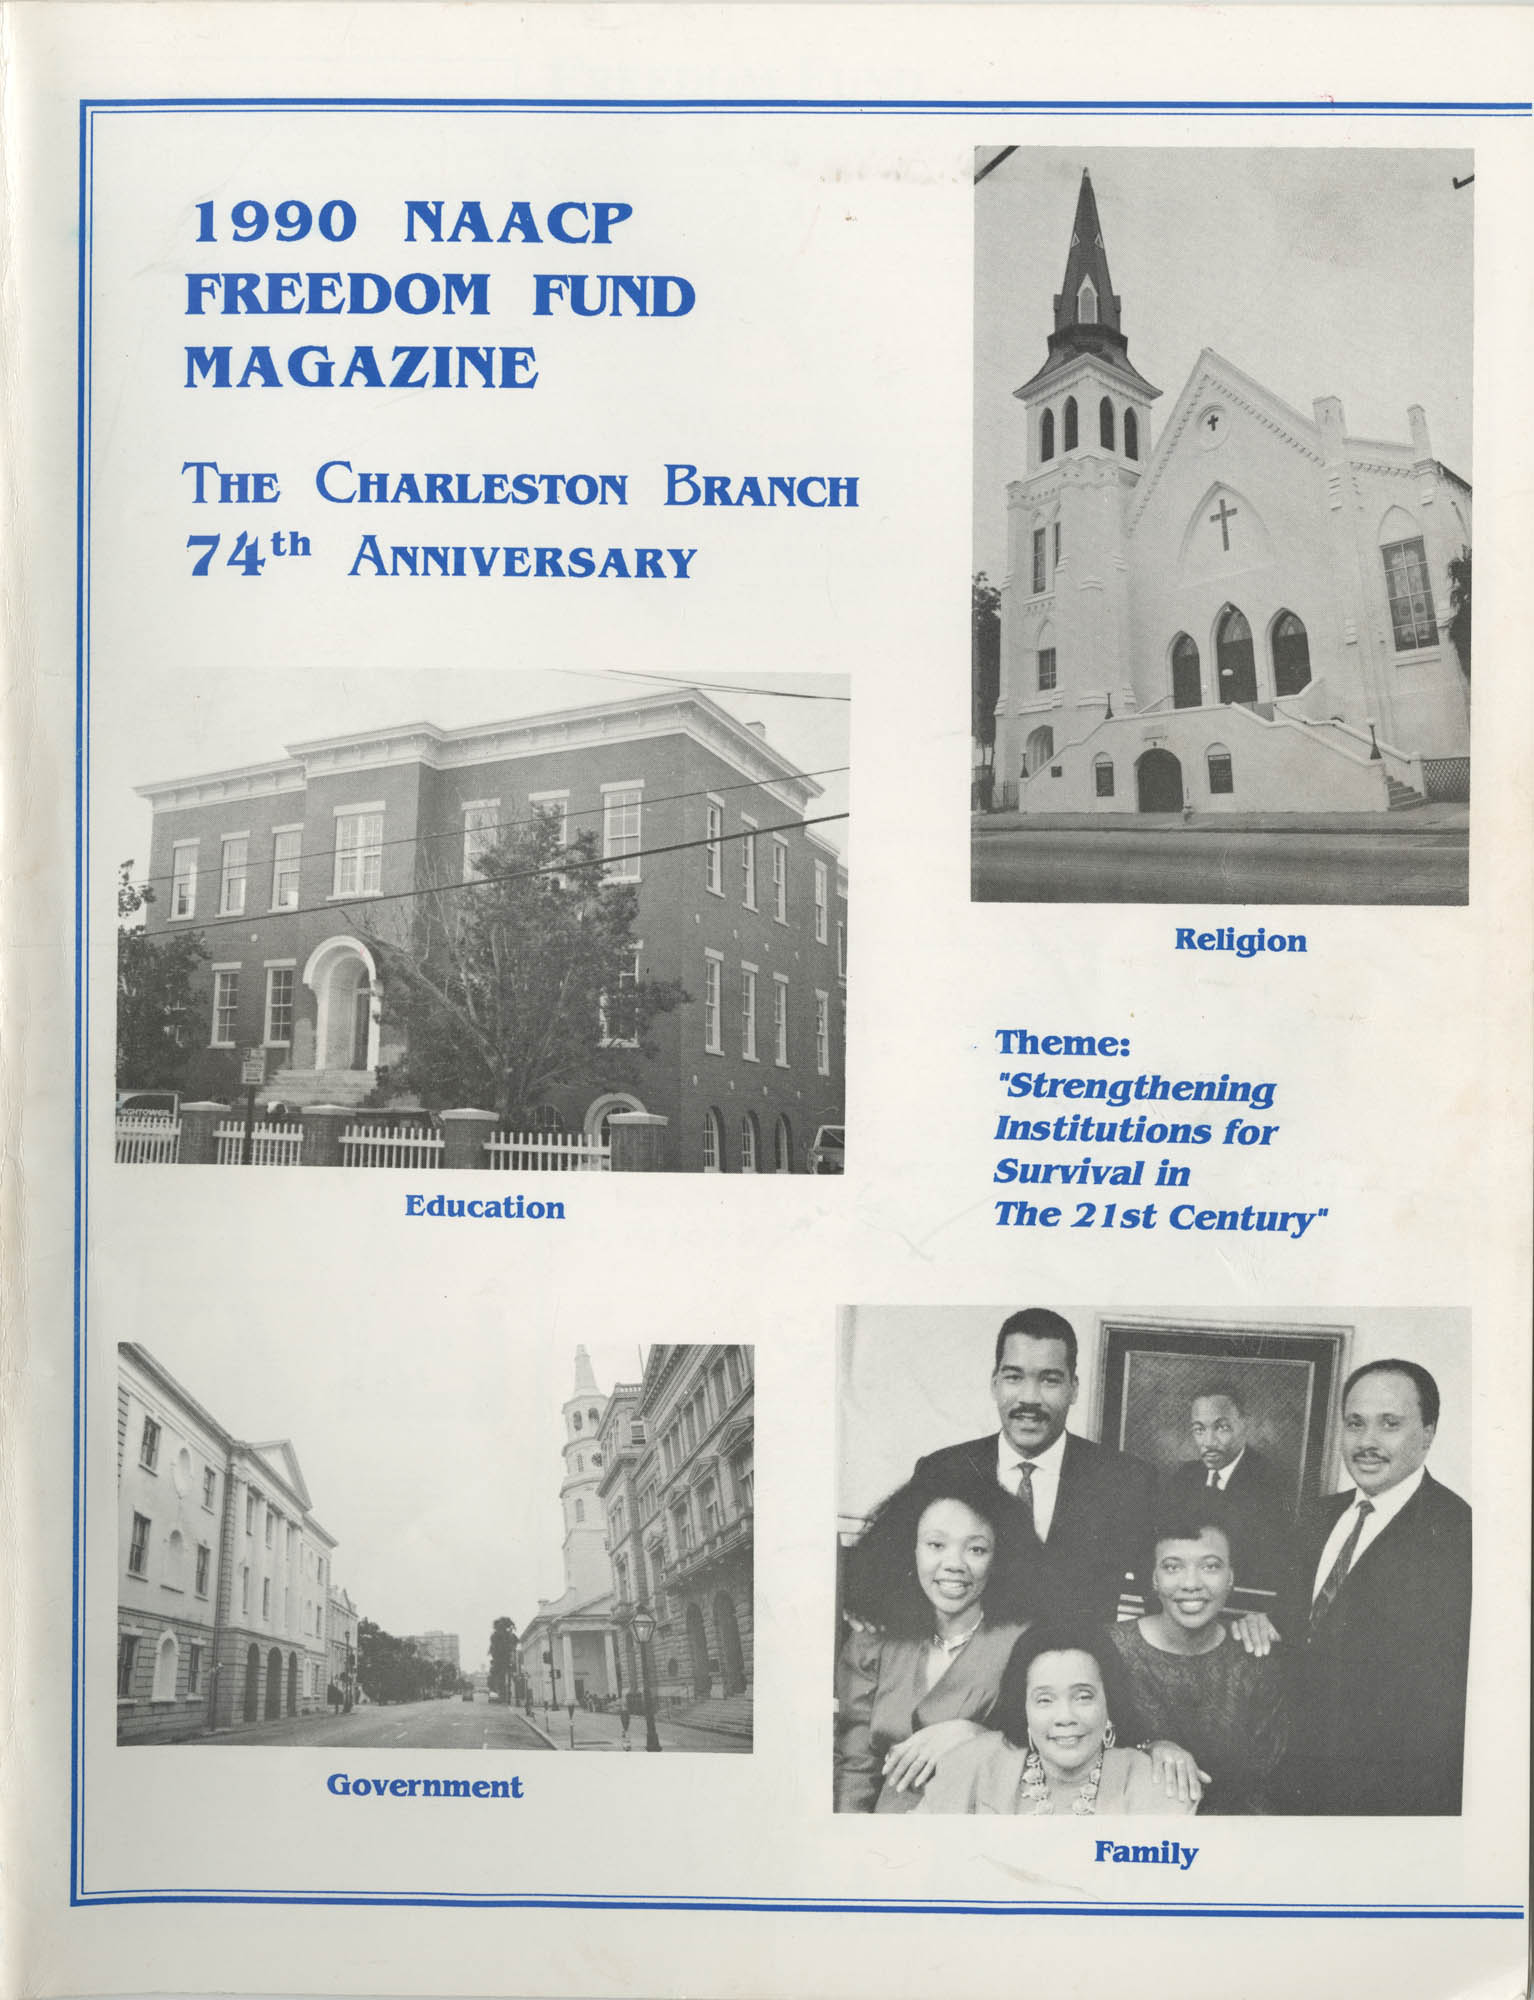 1990 NAACP Freedom Fund Magazine, Charleston Branch of the NAACP, 74th Anniversary, Cover Page